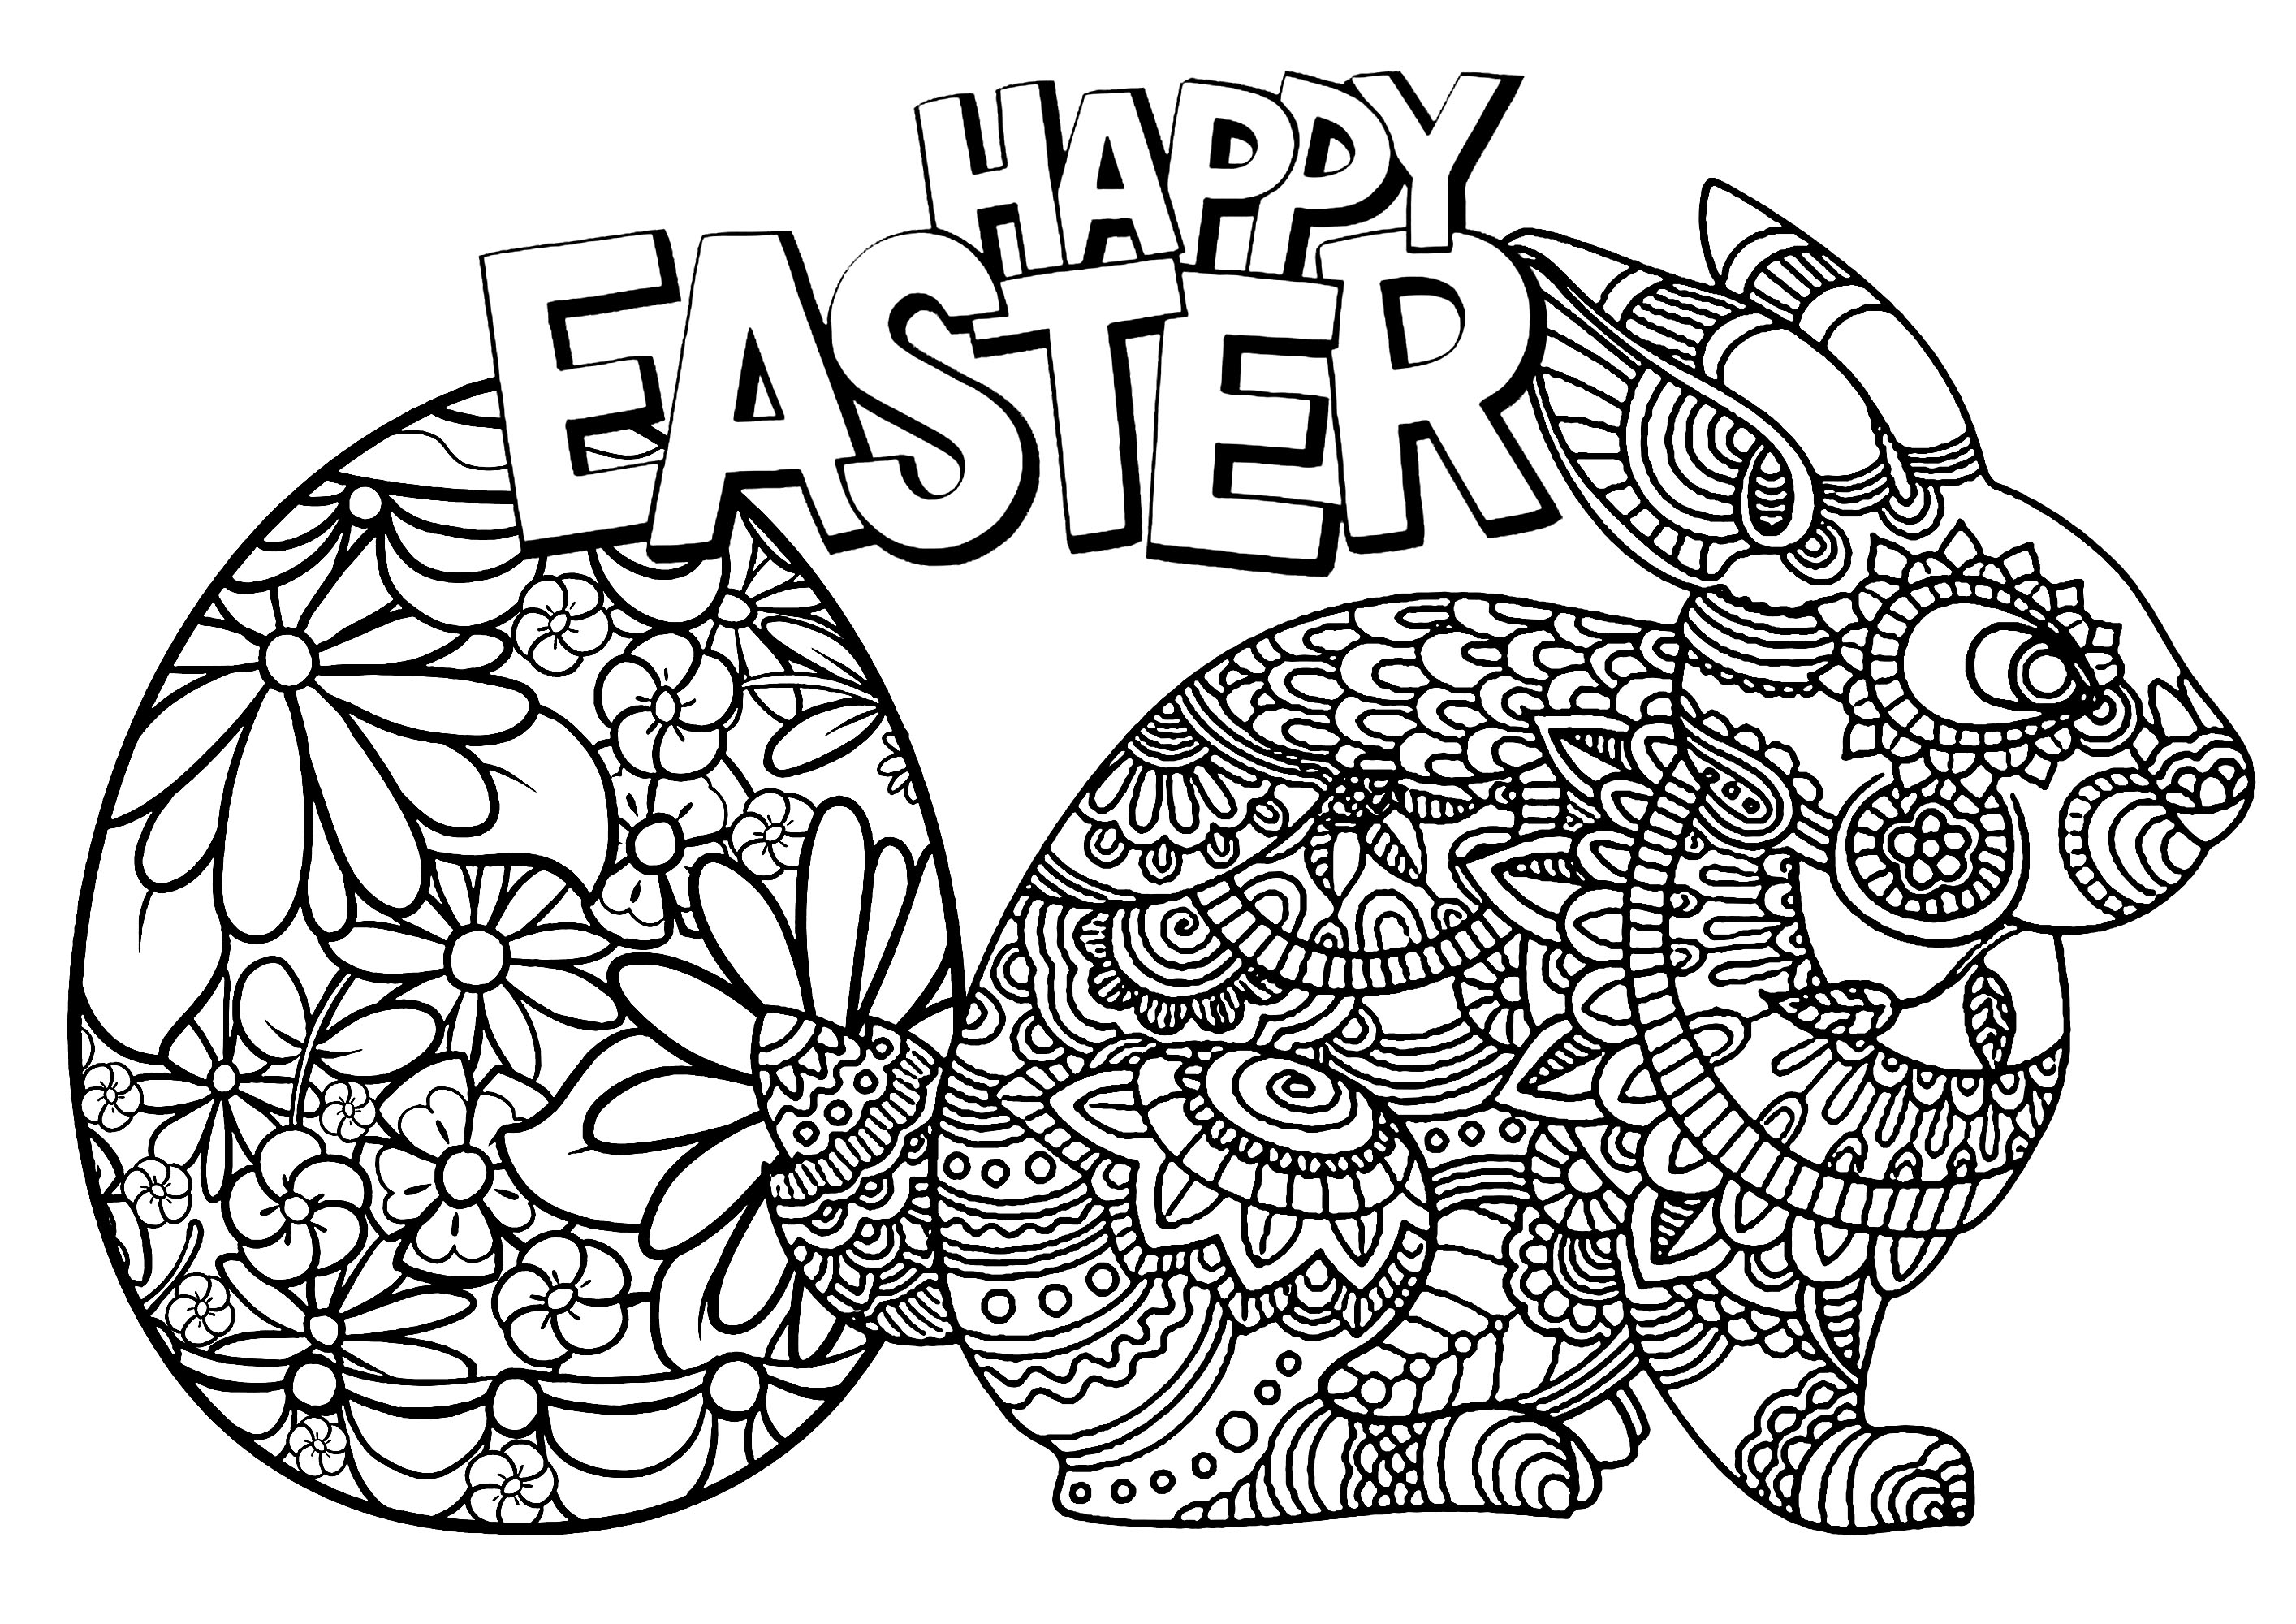 Easter egg and rabbit, with patterns, and text 'Happy Easter'